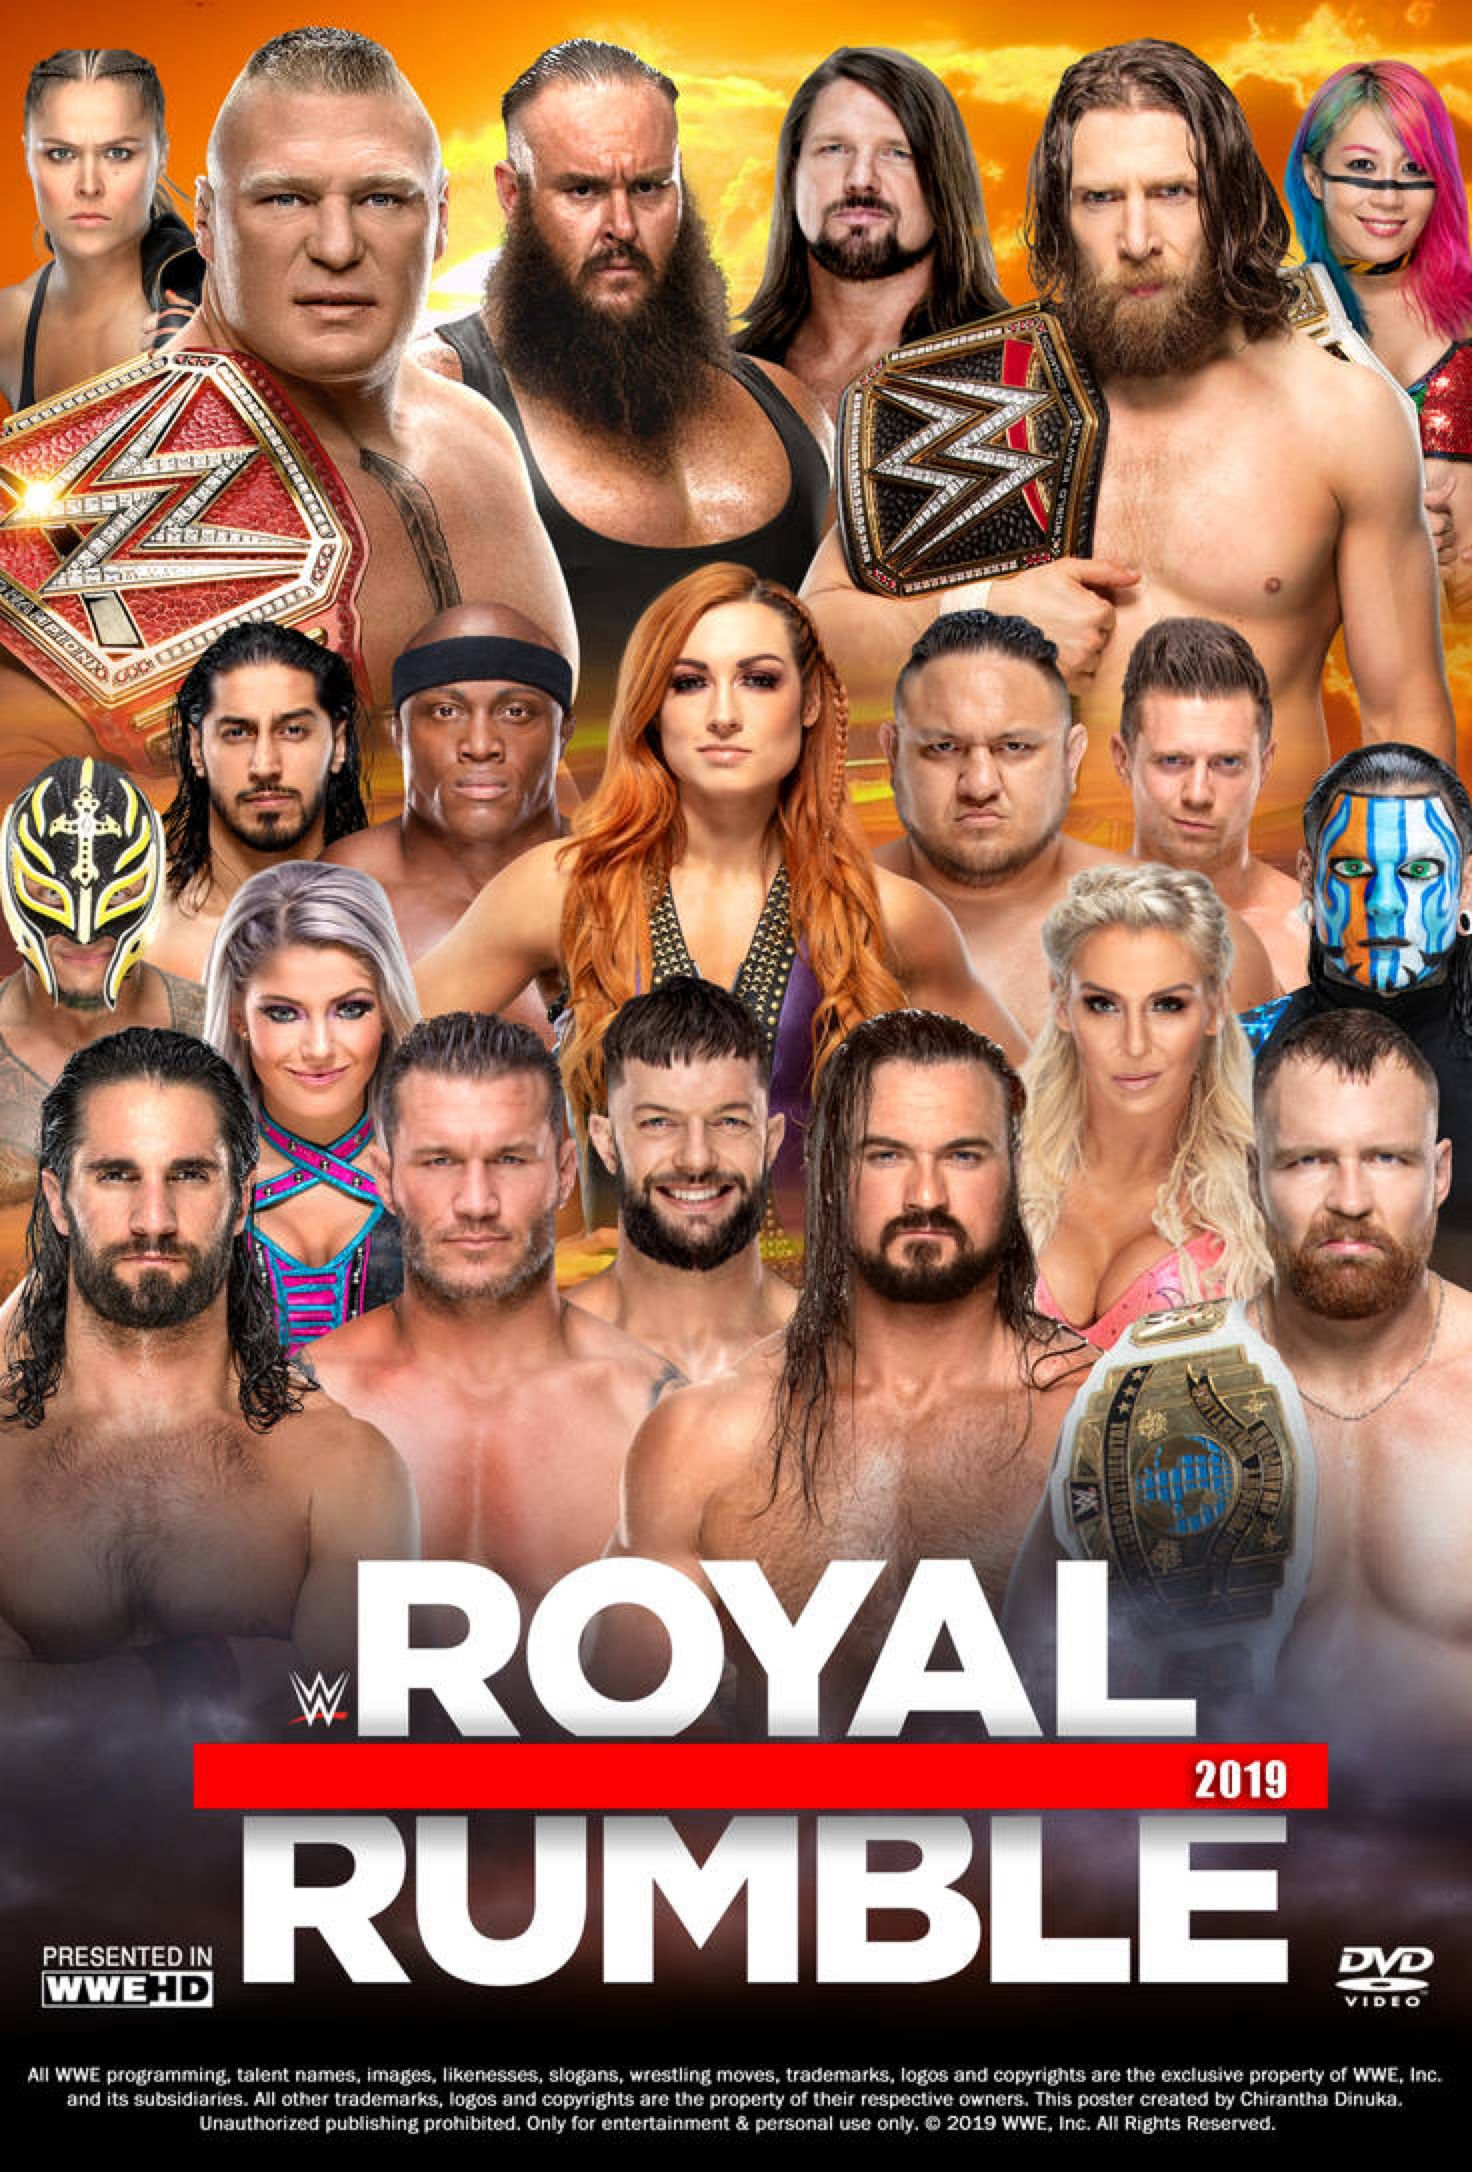 Wwe Royal Rumble 2019 Poster By Chirantha On Deviantart Wwe Royal Rumble Royal Rumble Wwe